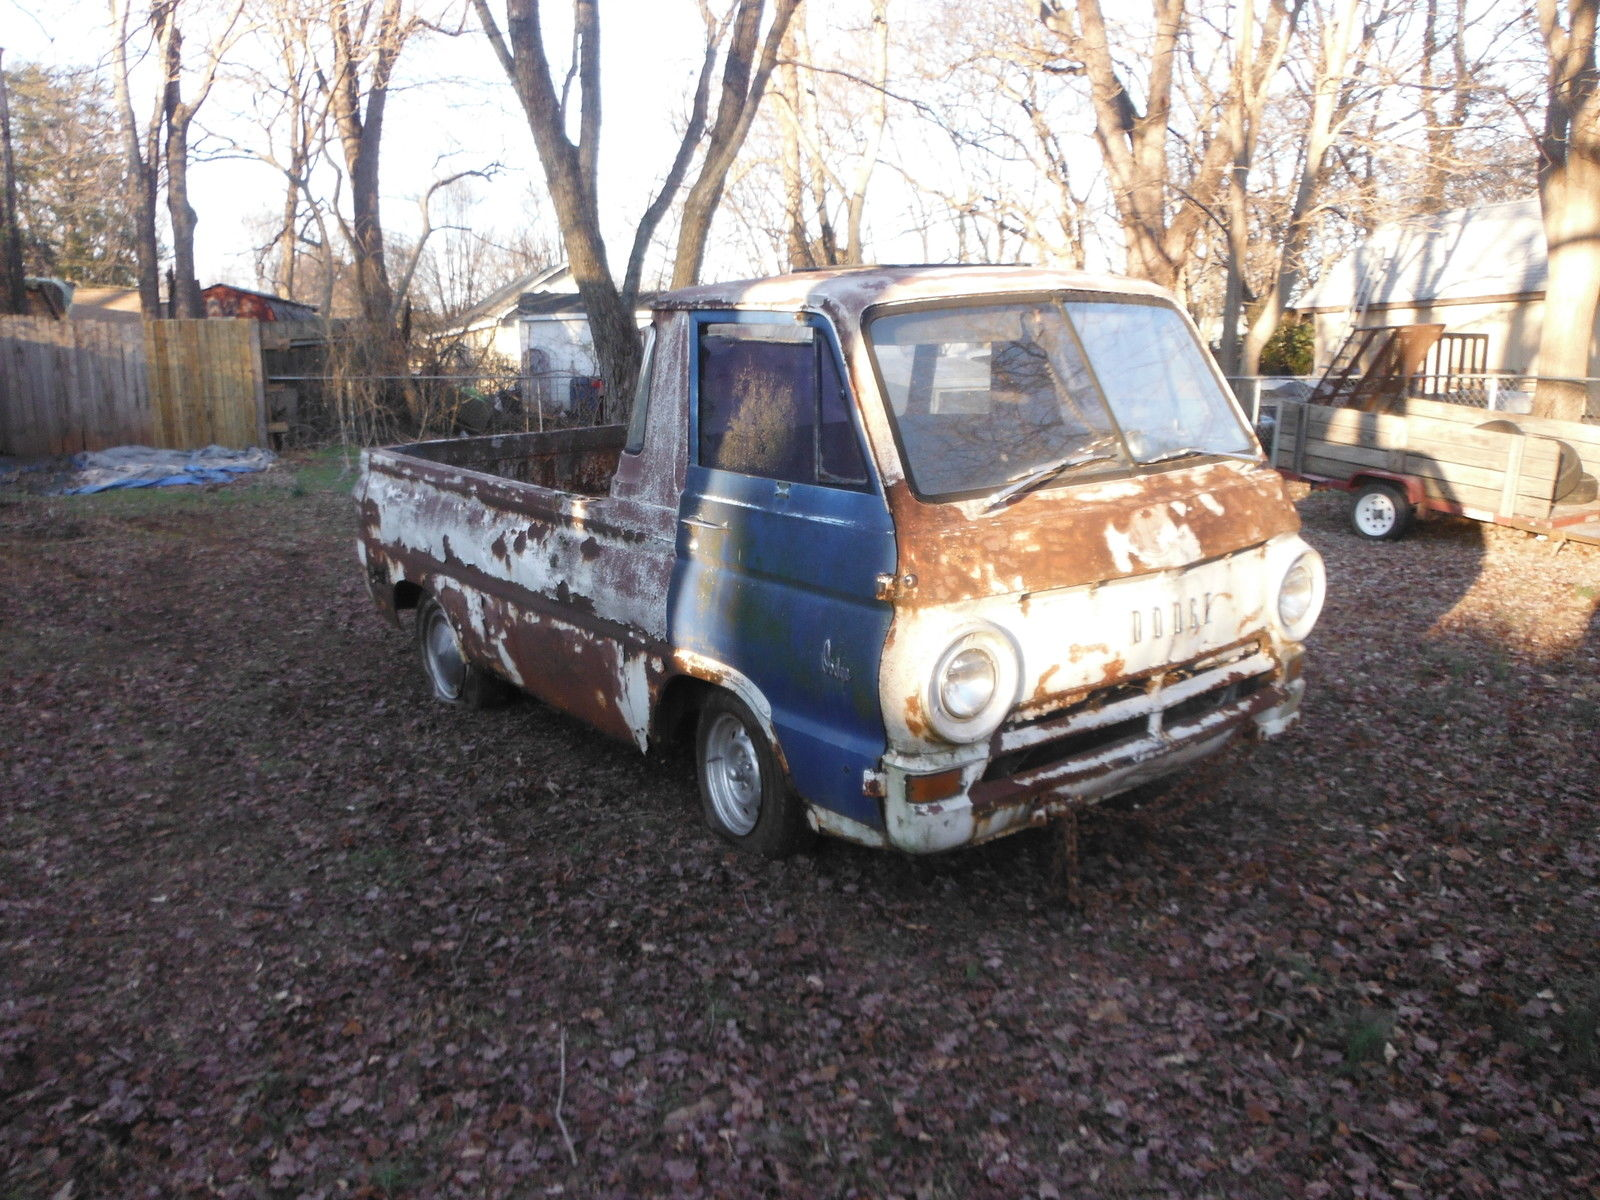 1964 Dodge A100 Pickup Truck For Sale in Greensboro North Carolina